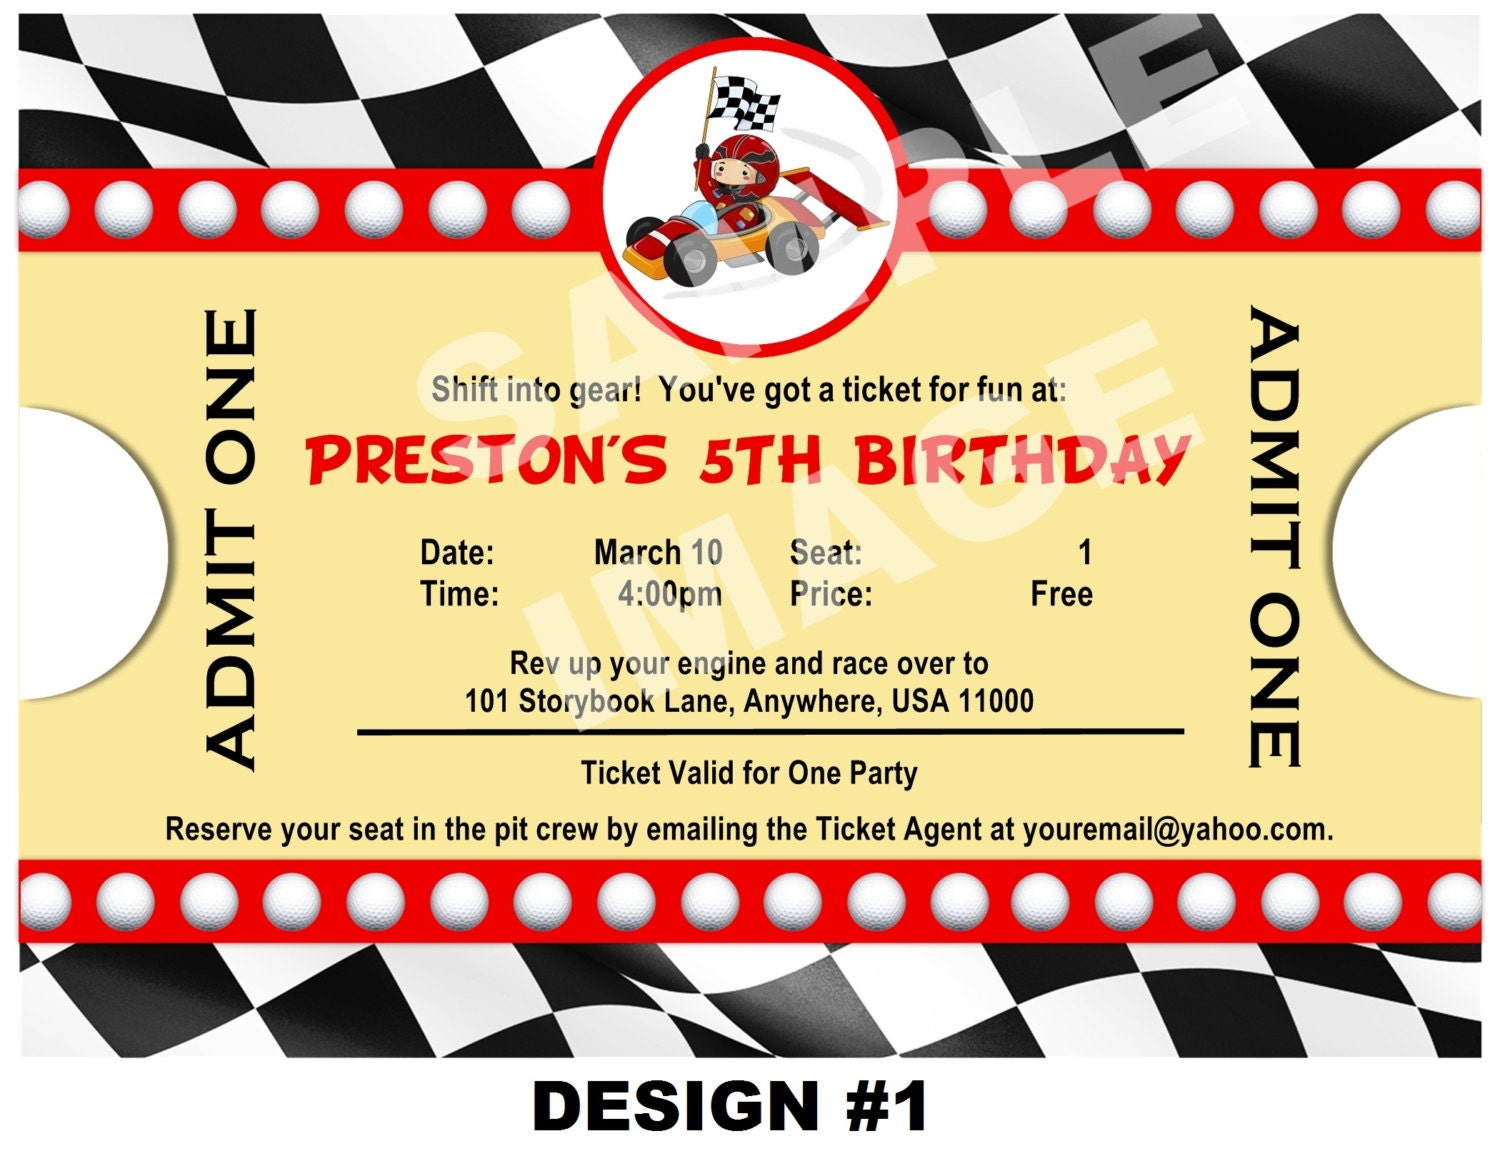 cars birthday invitations printable - Etame.mibawa.co